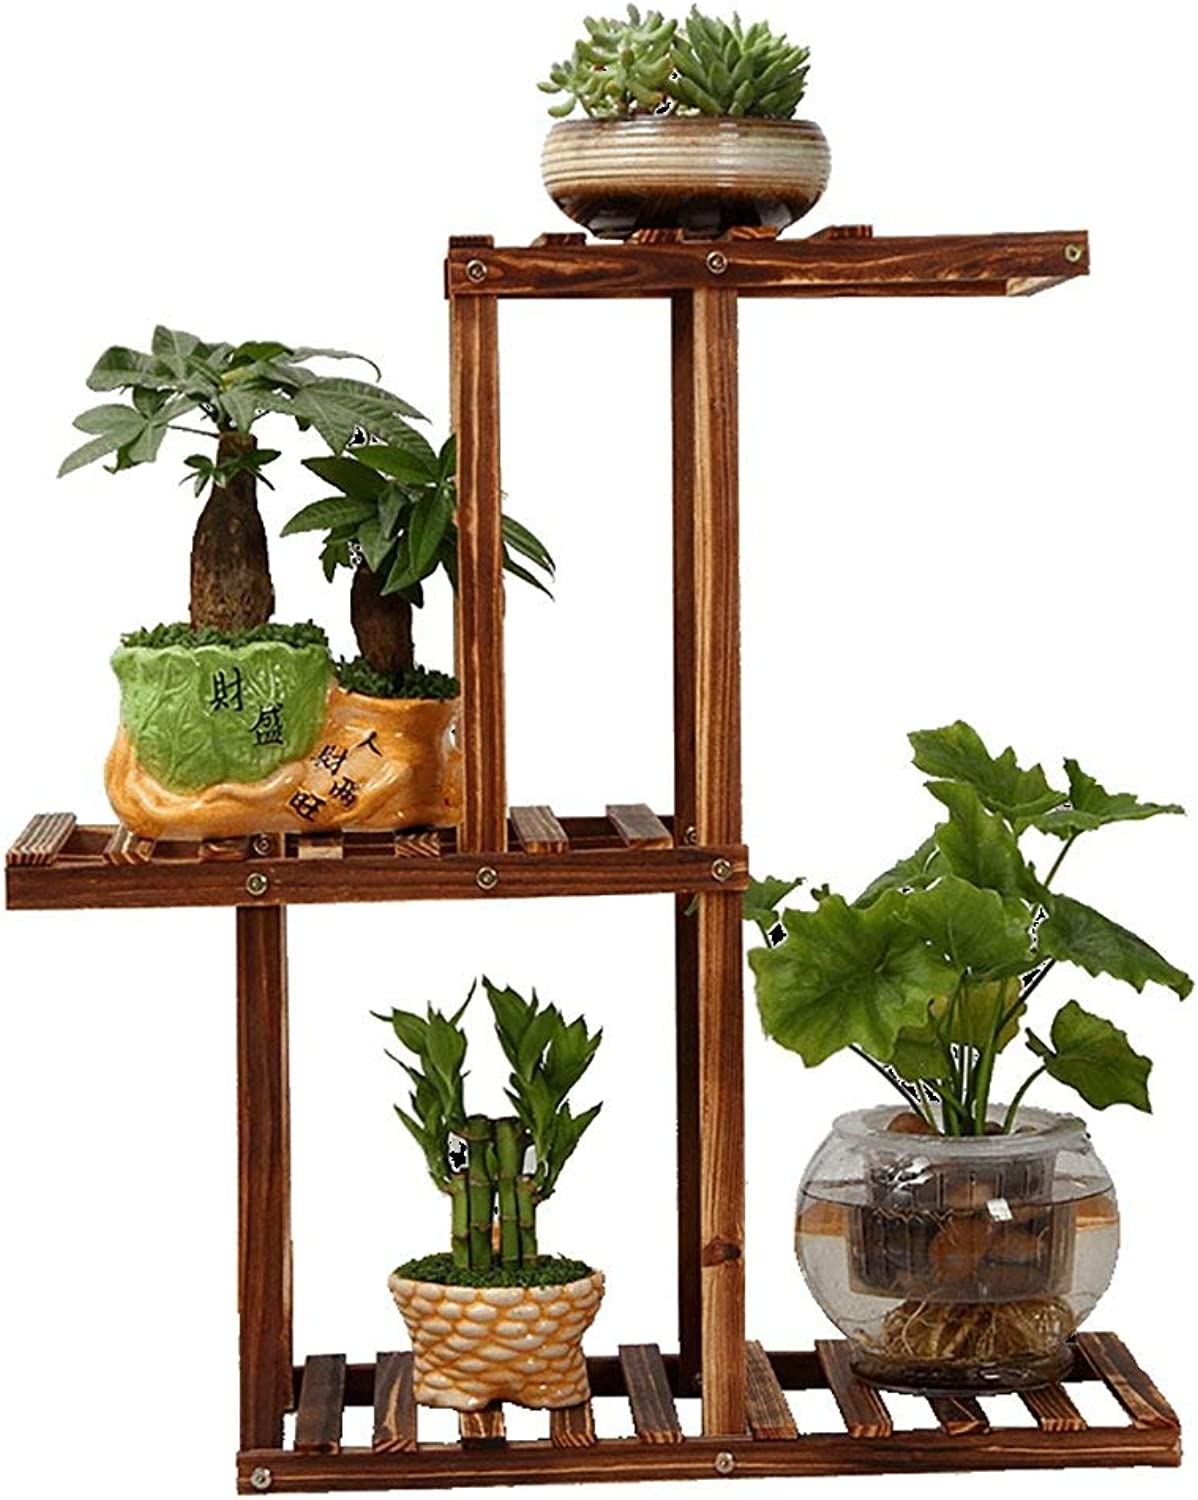 Shelves Organizer for Books Bookcase Bookshelf Ends Flower Stand Pure Wood Floor-Standing Multi-Layer Bonsai Shelf Balcony Living Room Indoor and Outdoor Flower Pot Shelf Plant Stand Patio Strong STU